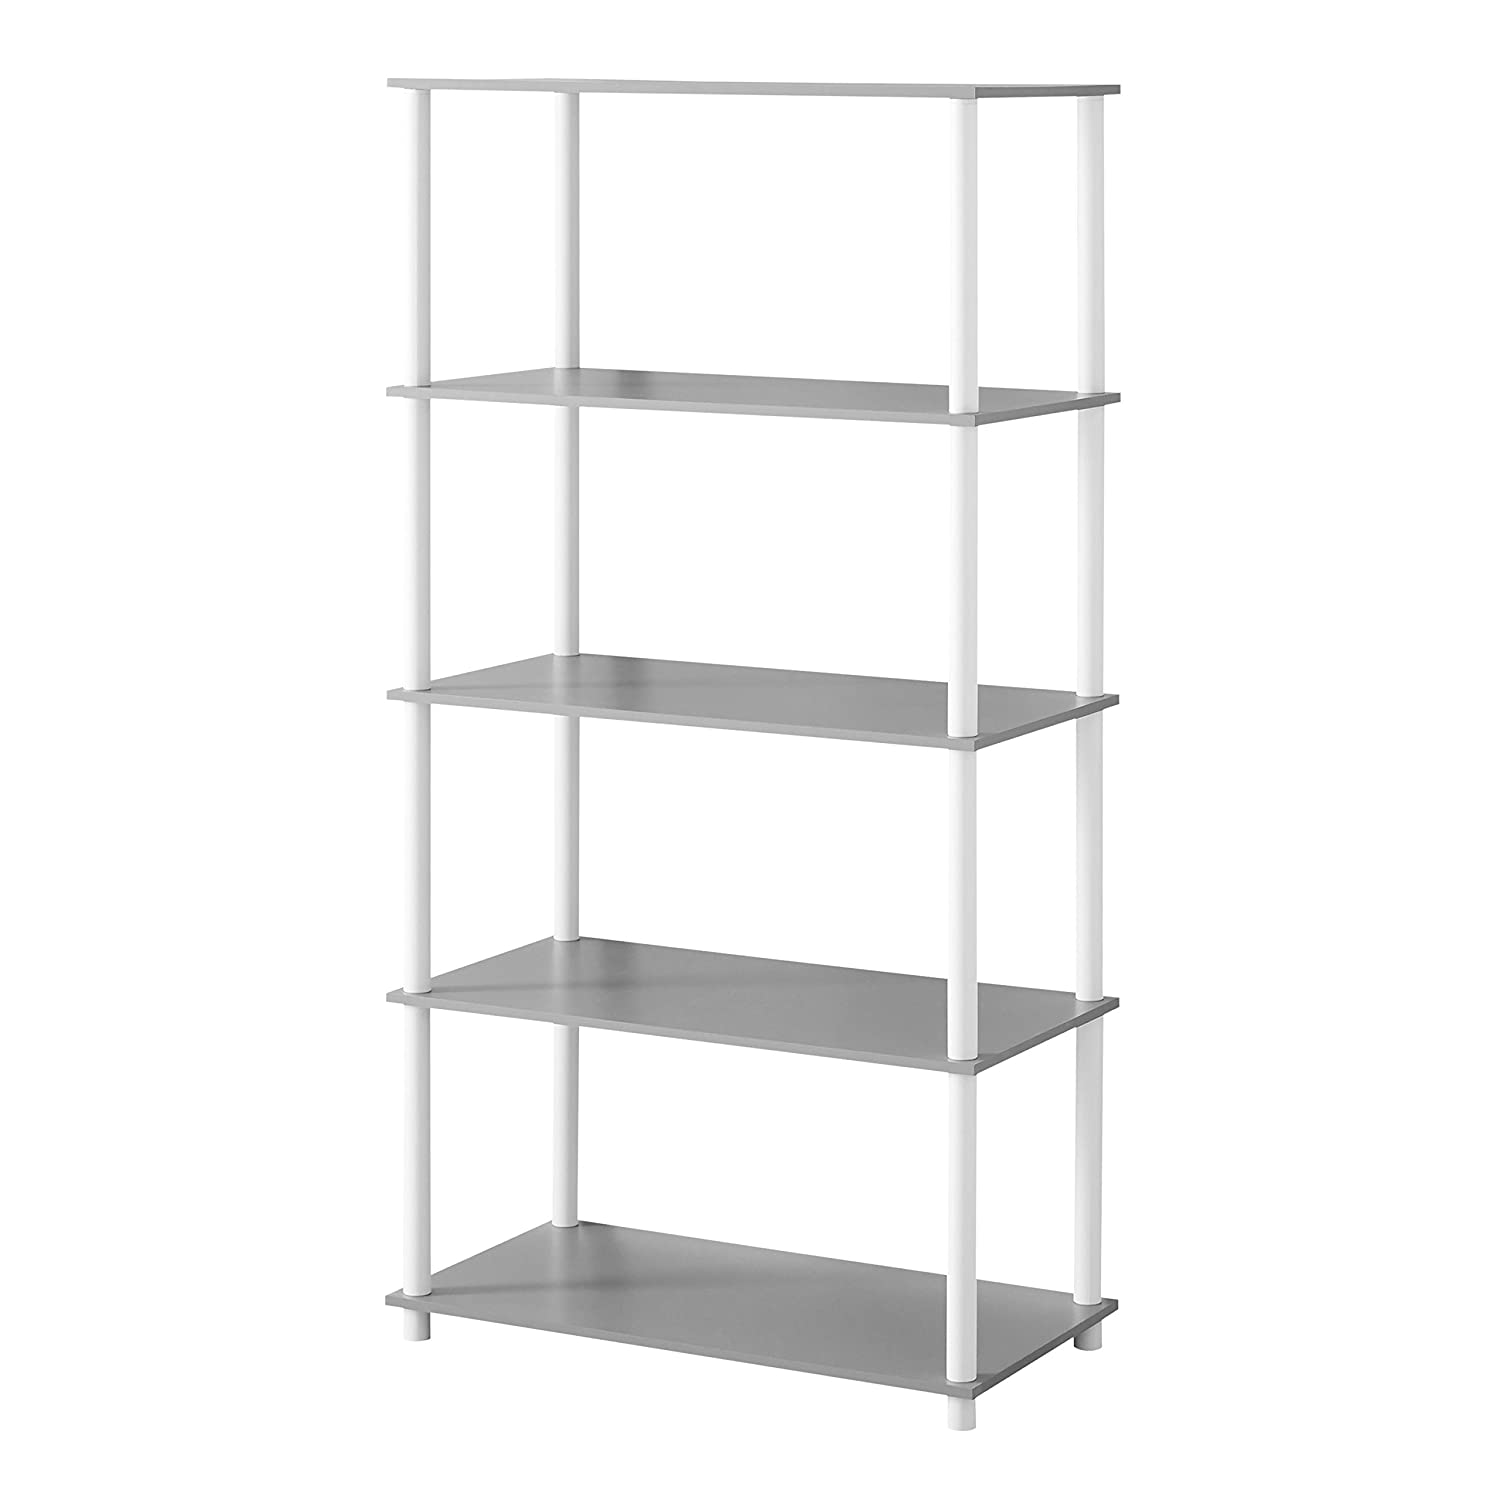 Mainstays No Tools Assembly Shelving Storage Unit 8-Cube, White